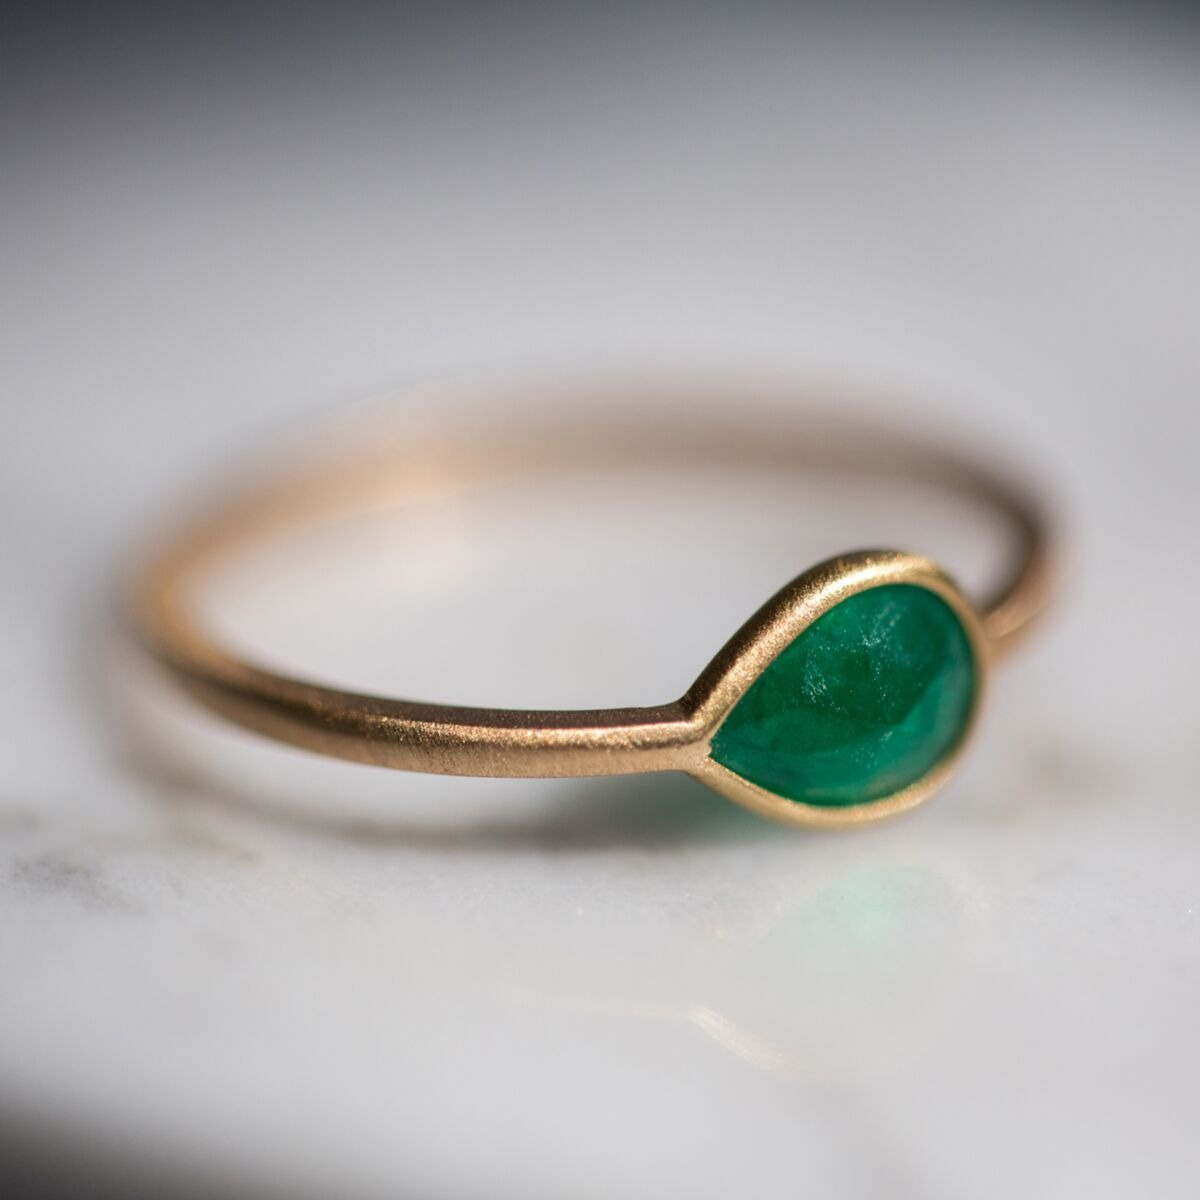 18K gold tilted pear shaped emerald ring